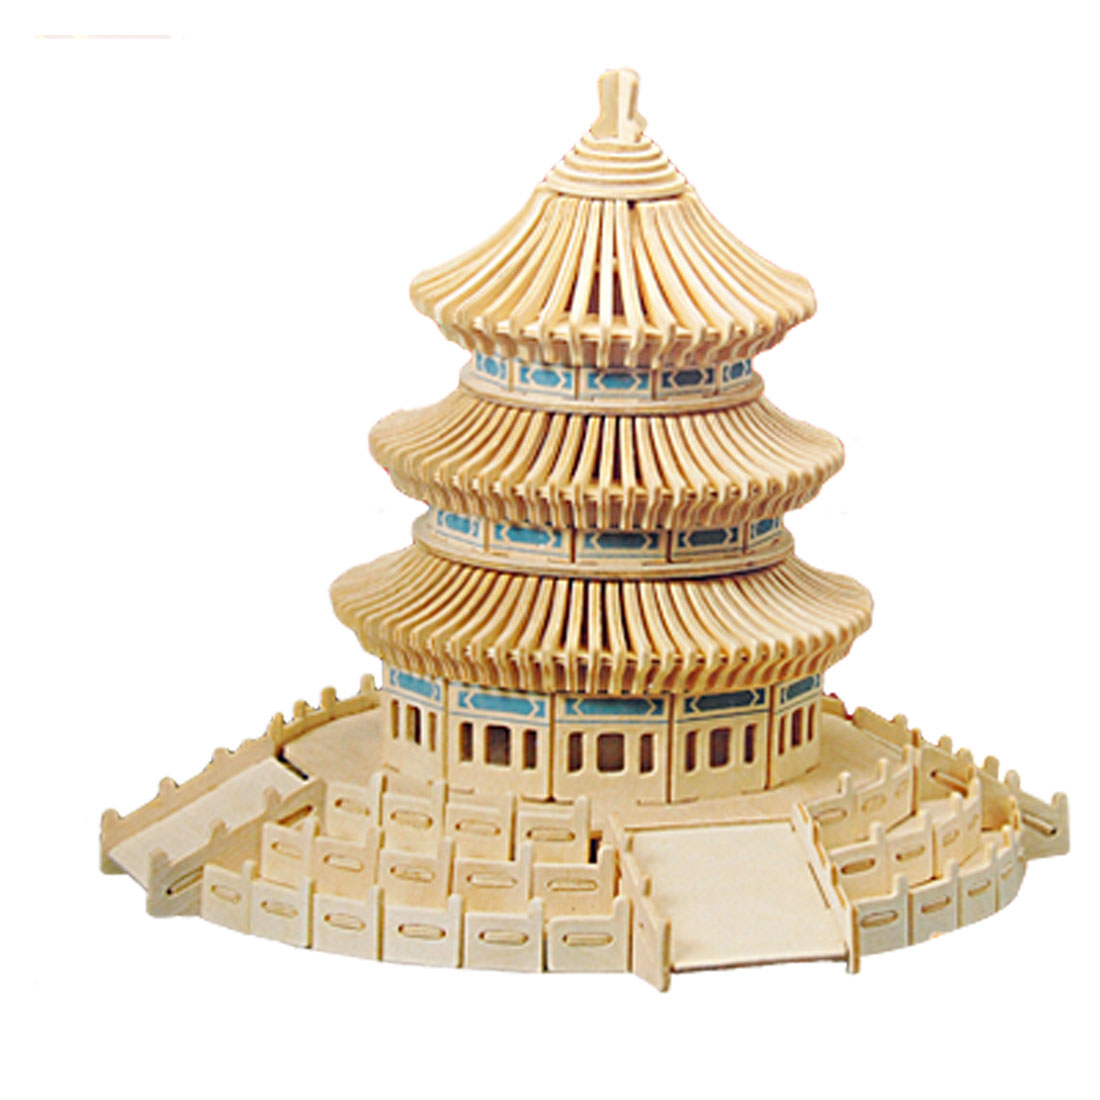 Temple of Heaven Model Puzzle Toy Woodcraft Construction Kit